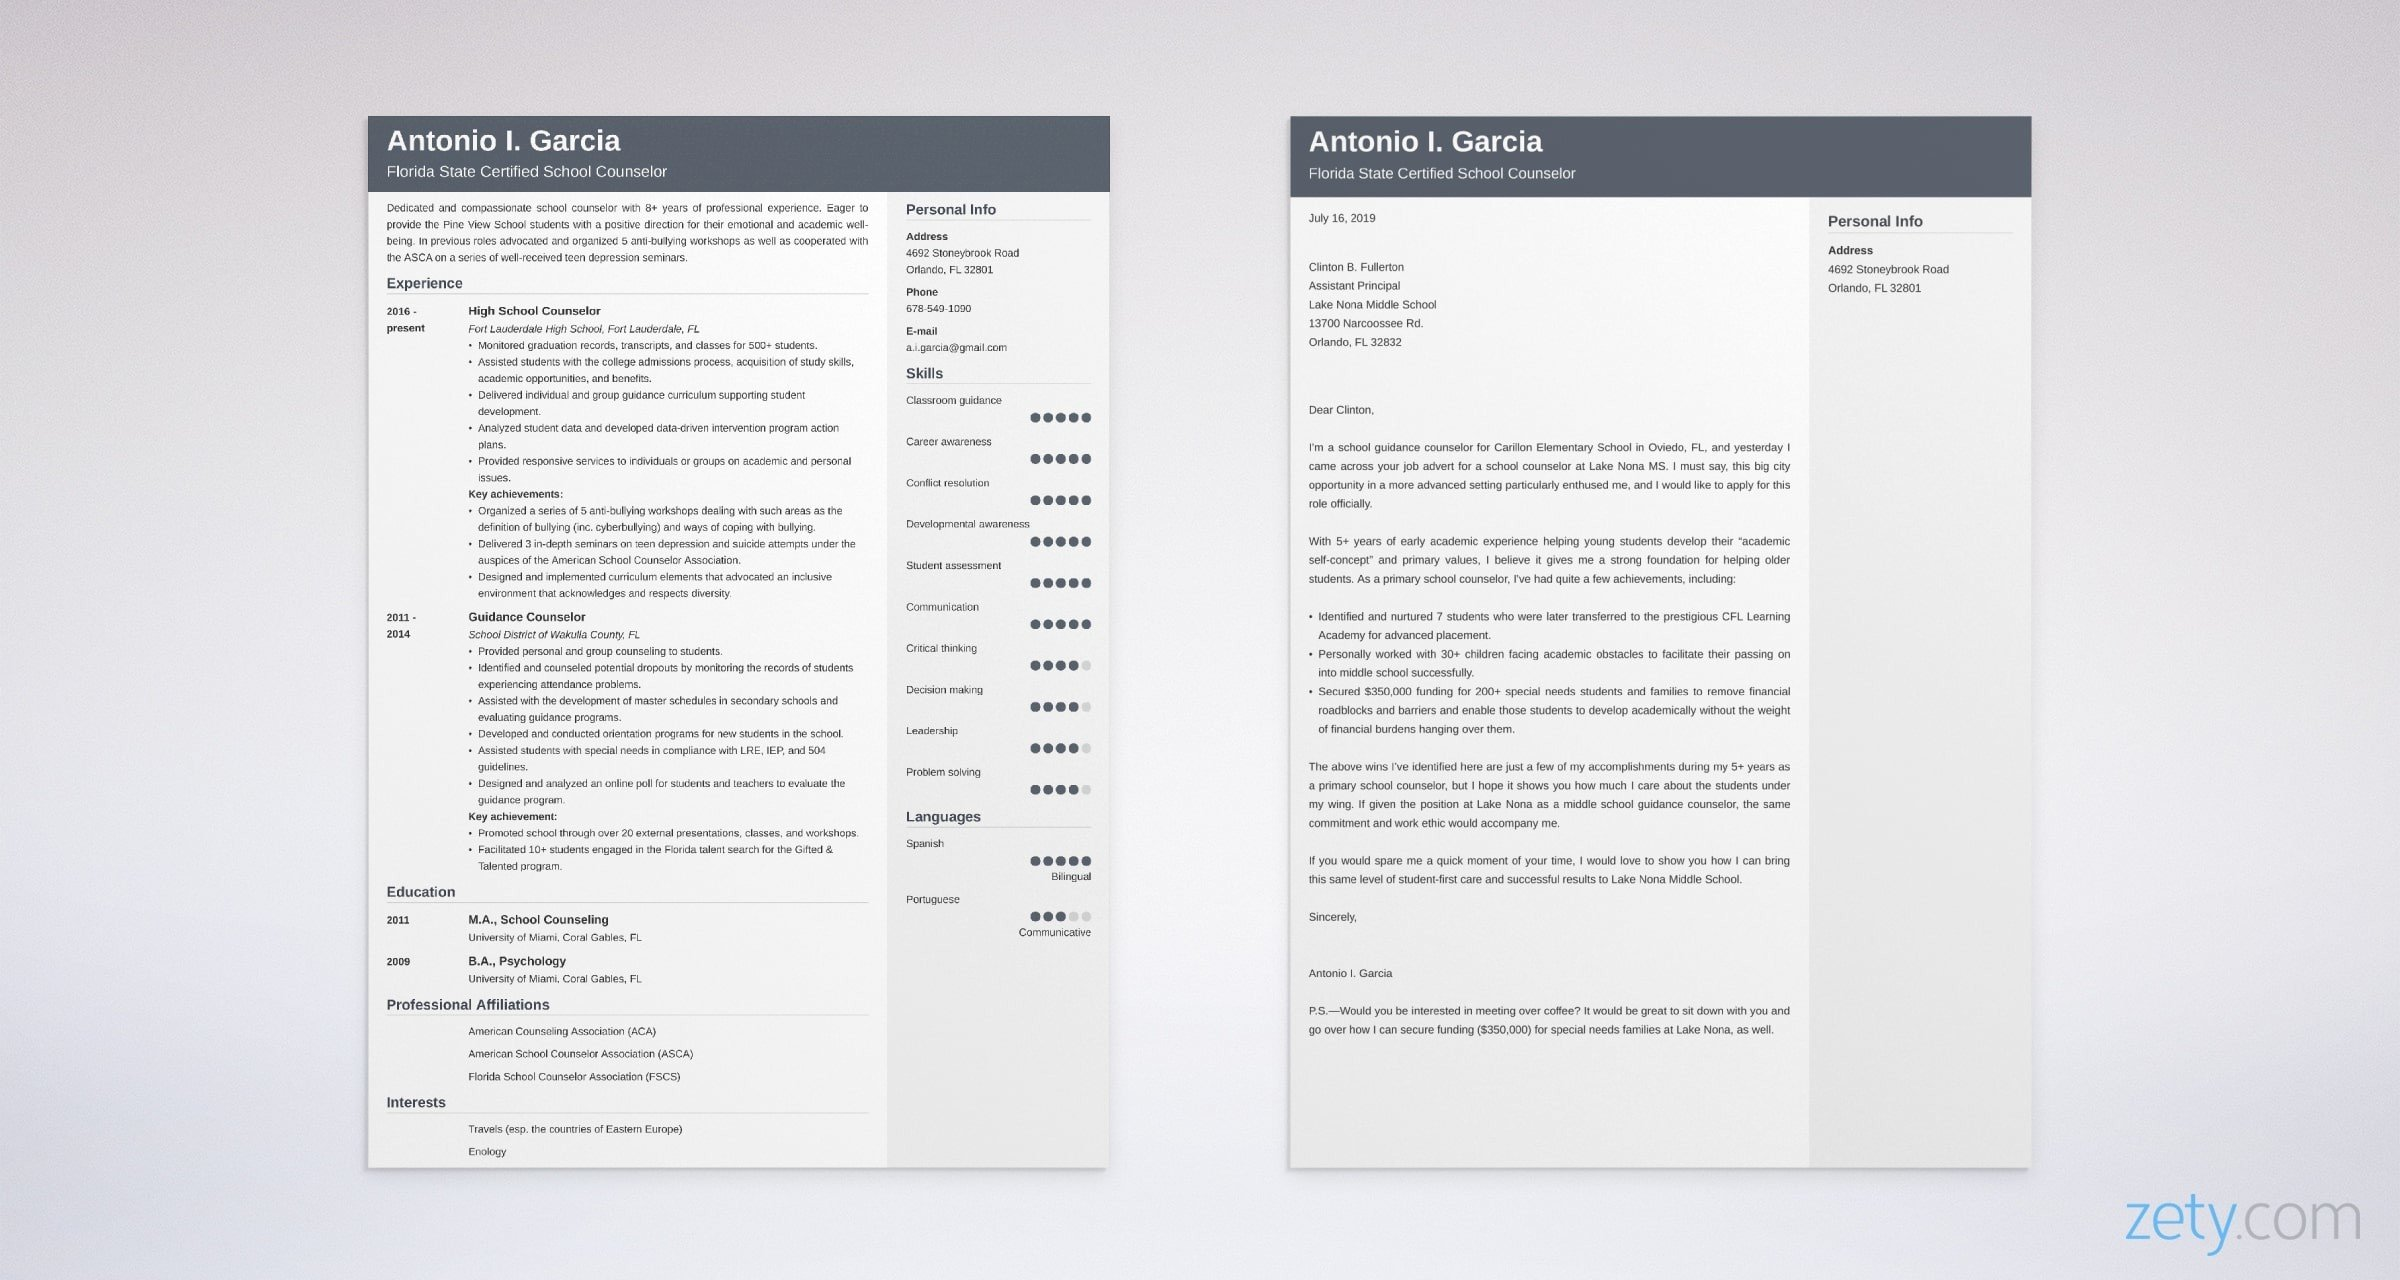 school counselor resume and cover letter set